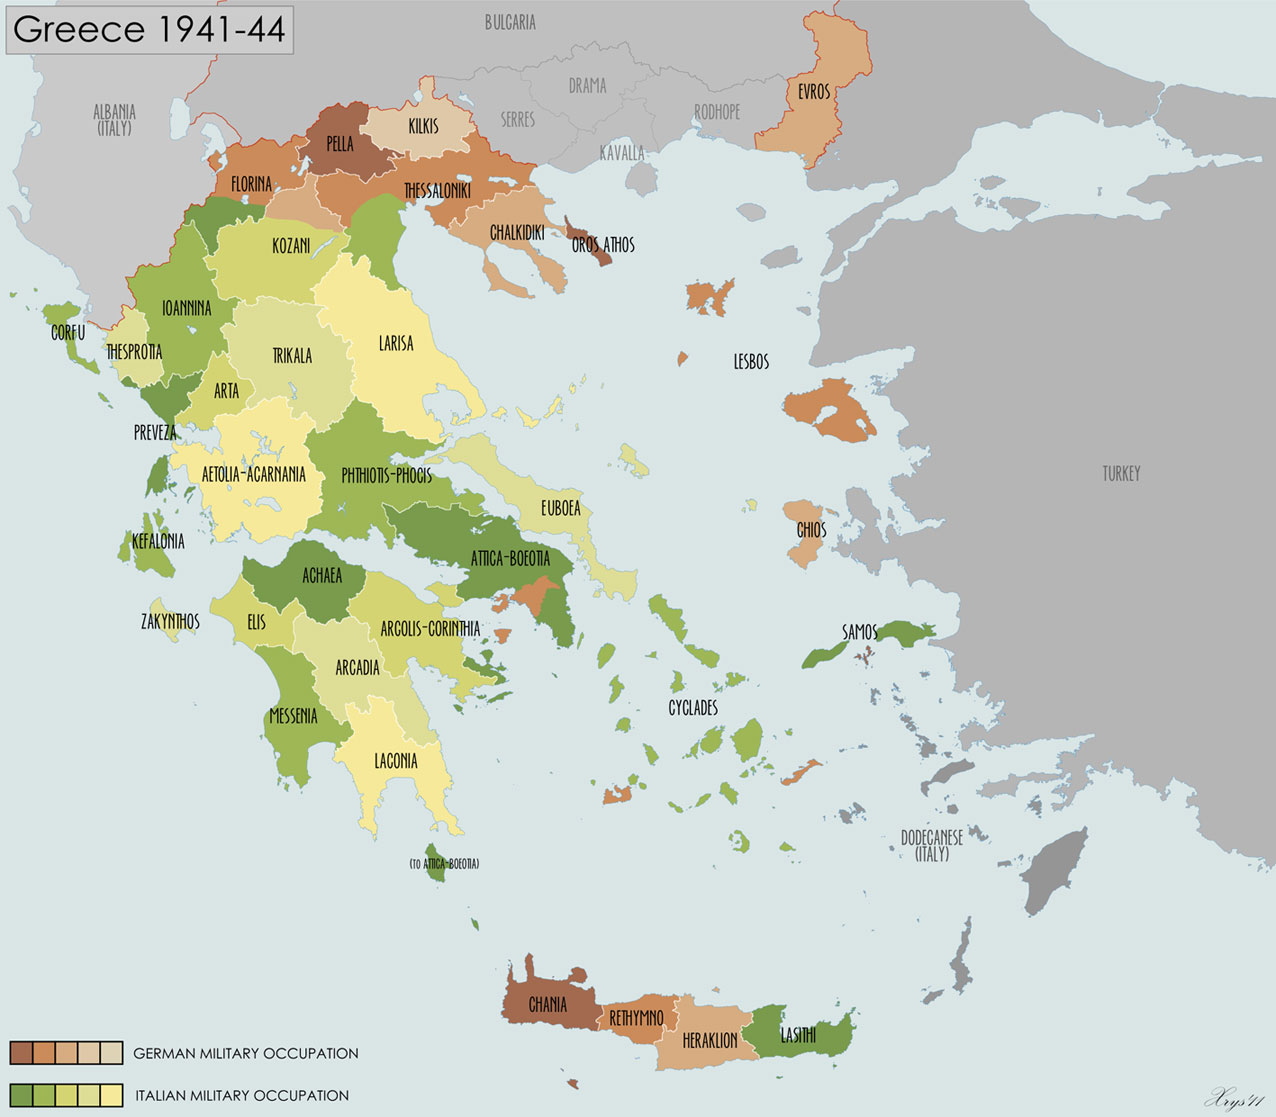 Map of Greece showing German/Italian occupied areas